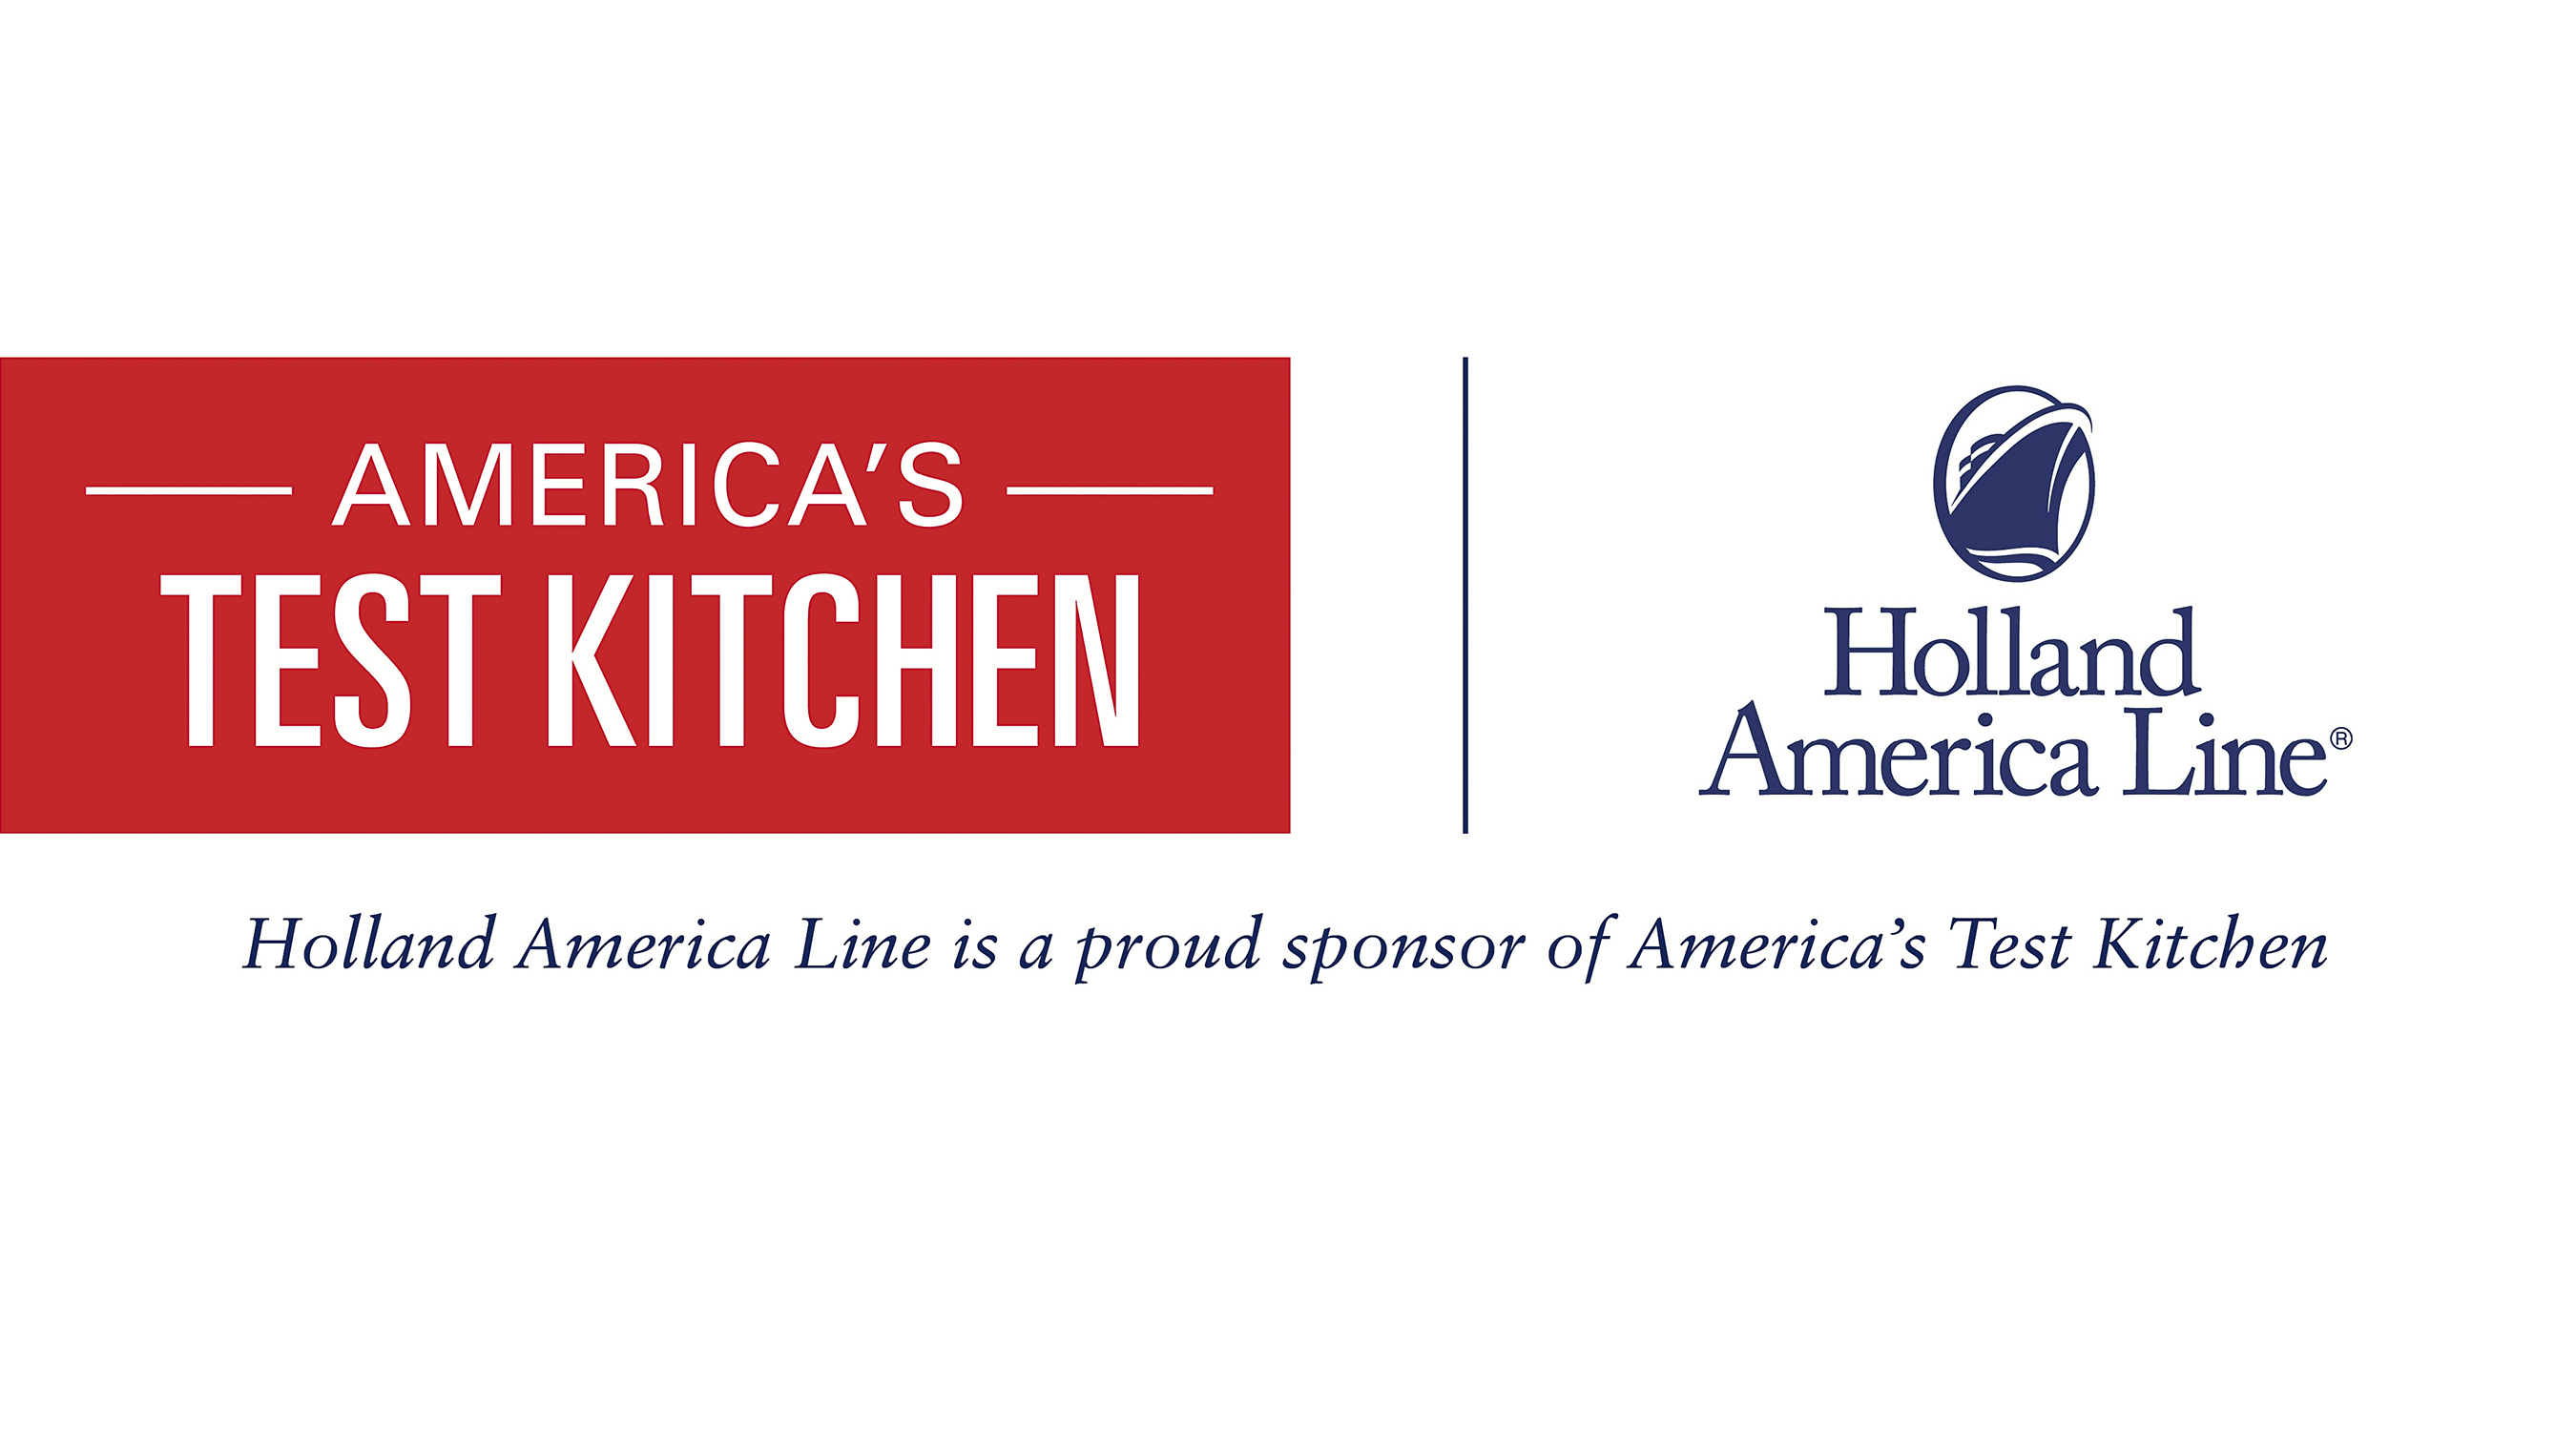 Holland America Line Launches Partnership with America's